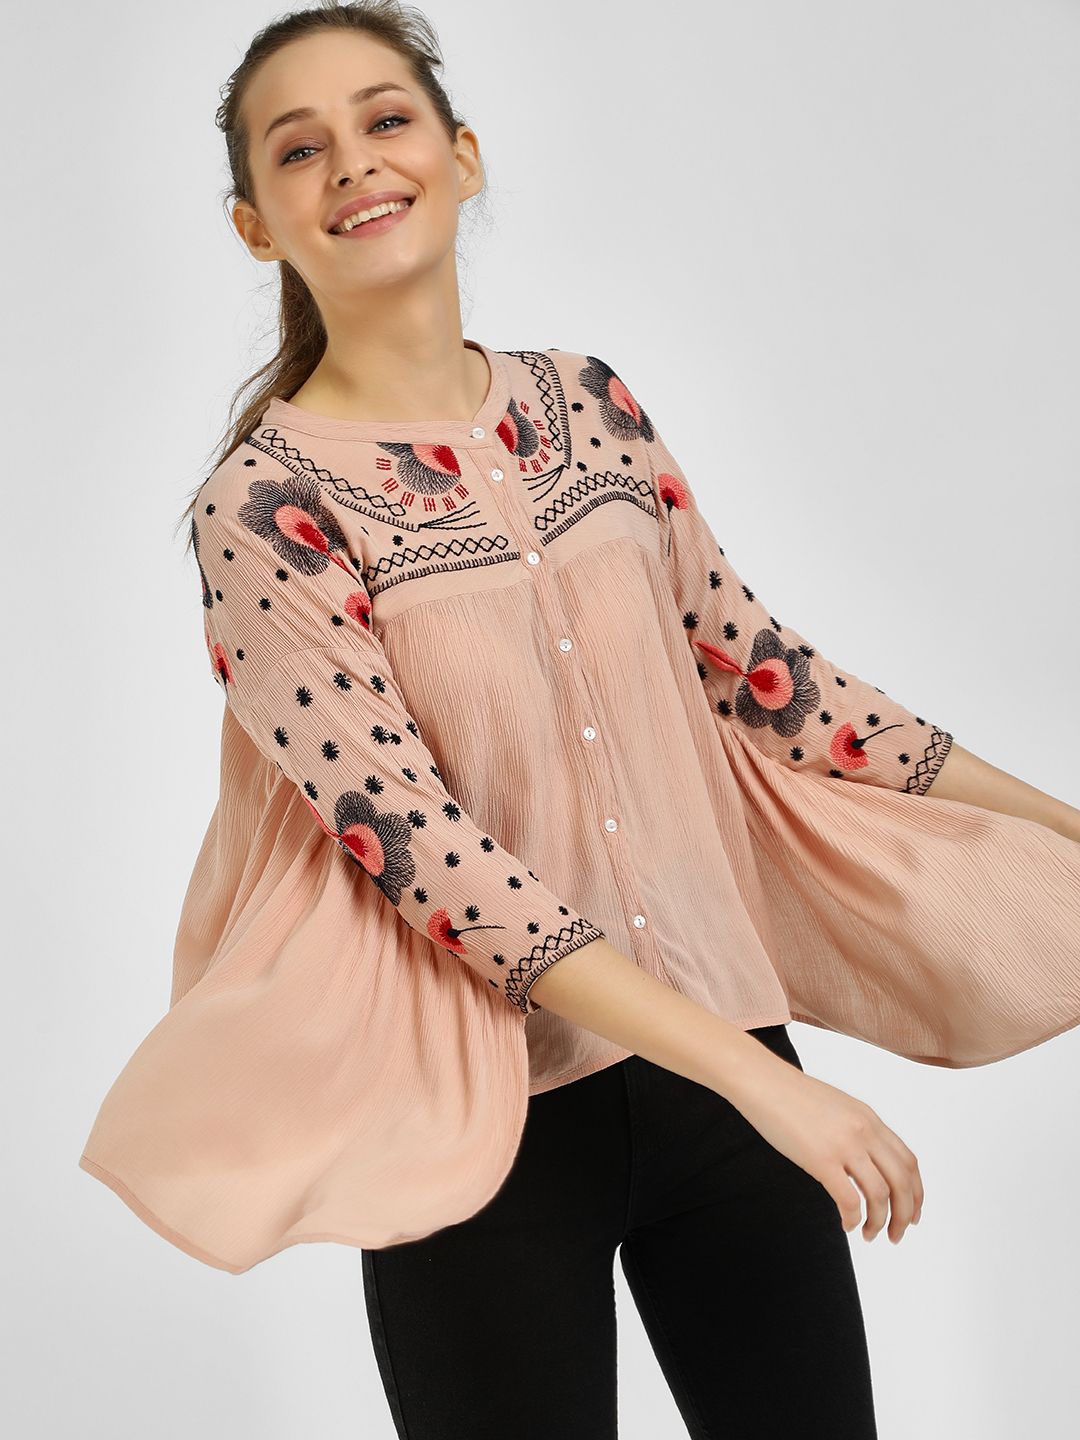 Rena Love Peach Batwing Detail Embroidered Blouse 1